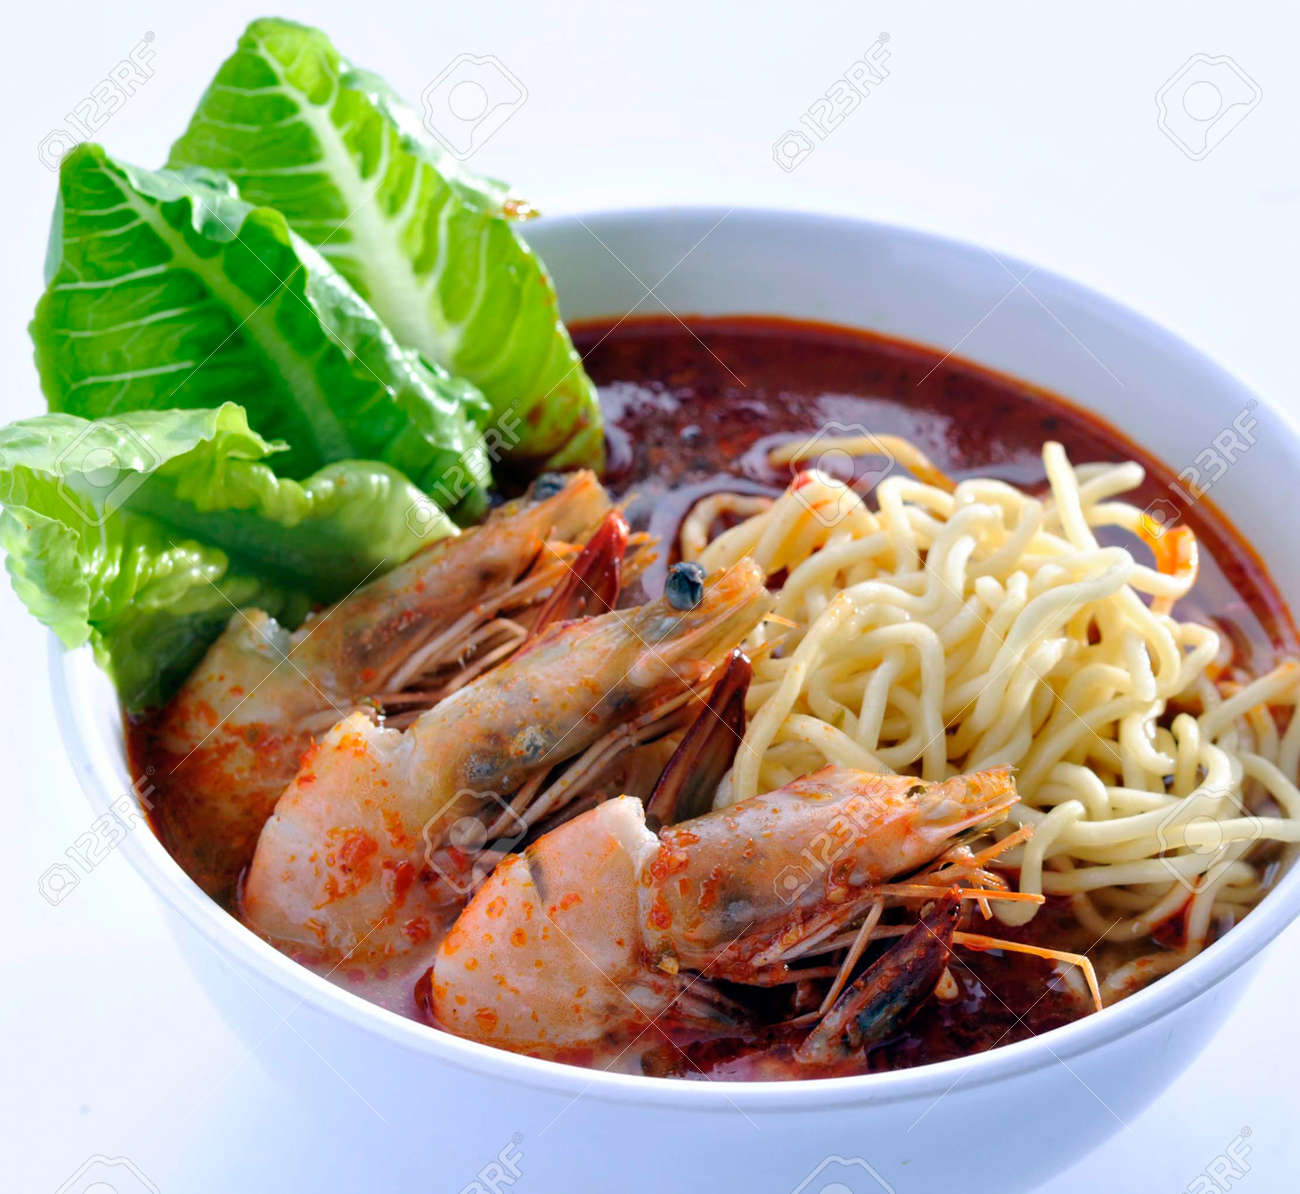 Prawn noodle - Malaysian food spicy noodles Stock Photo - 13202452